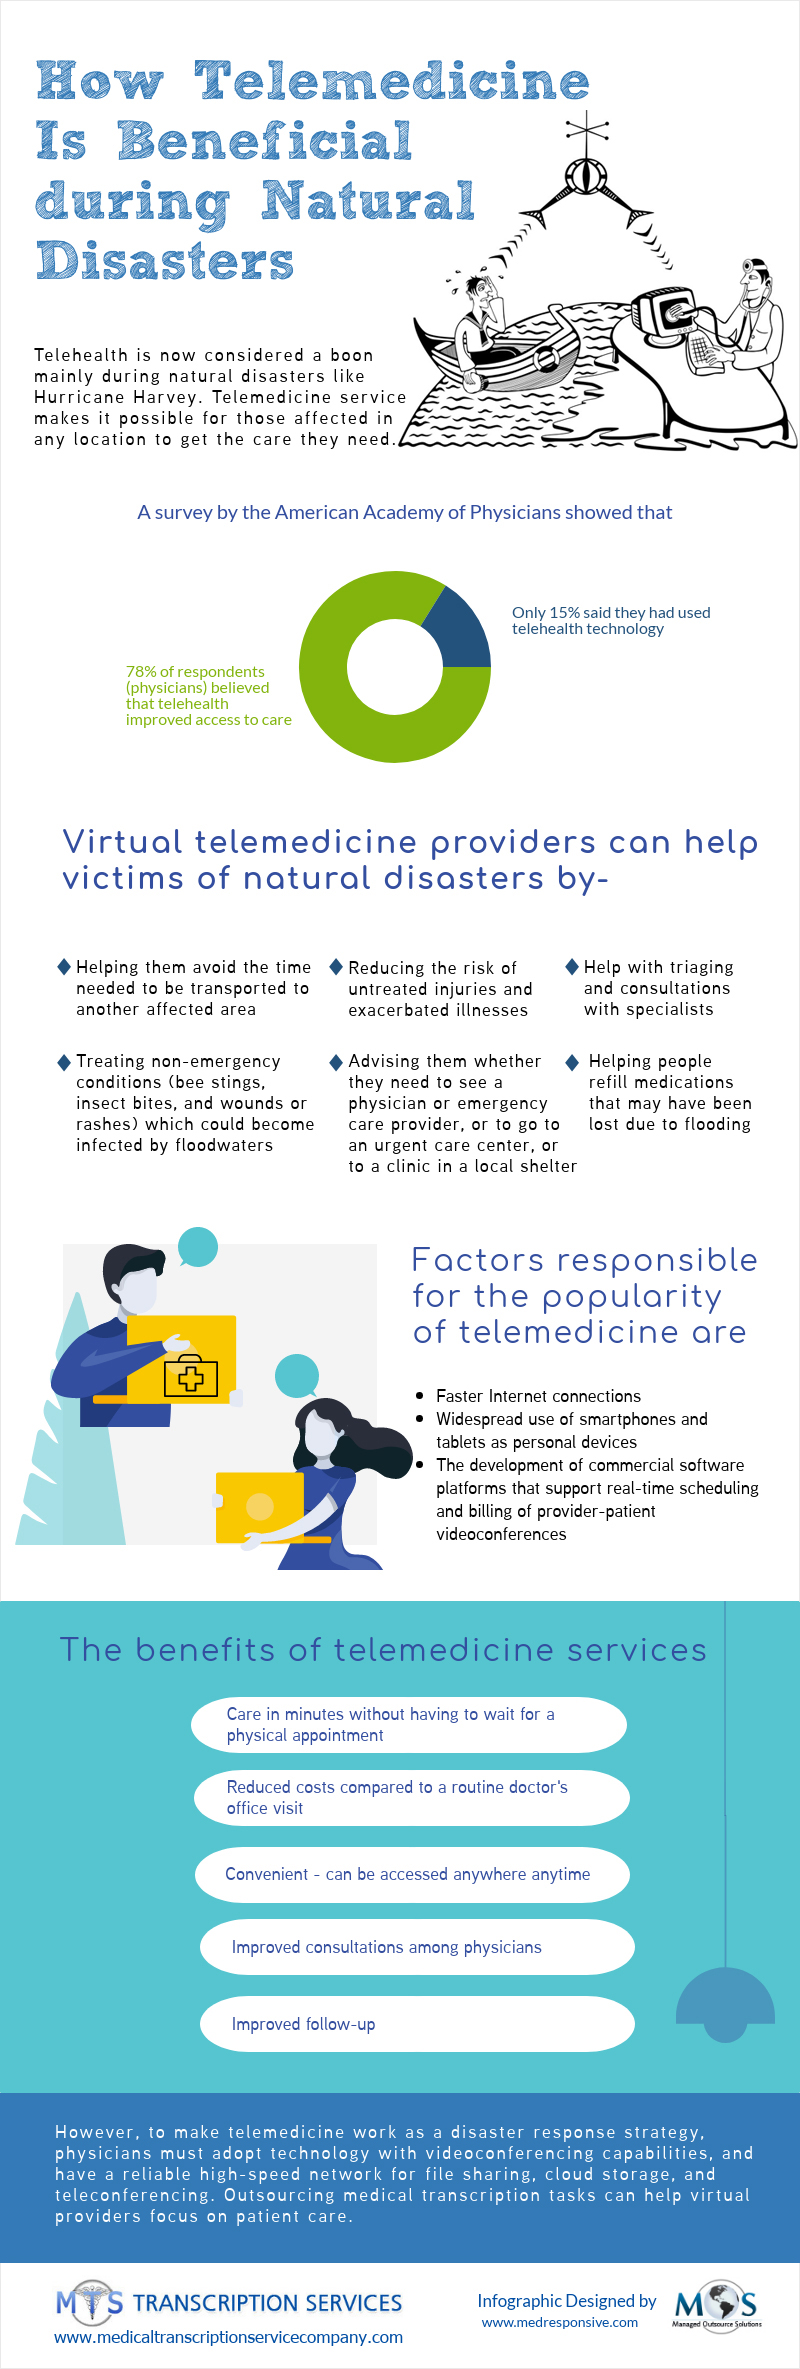 how-telemedicine-is-beneficial-during-natural-disasters.jpg